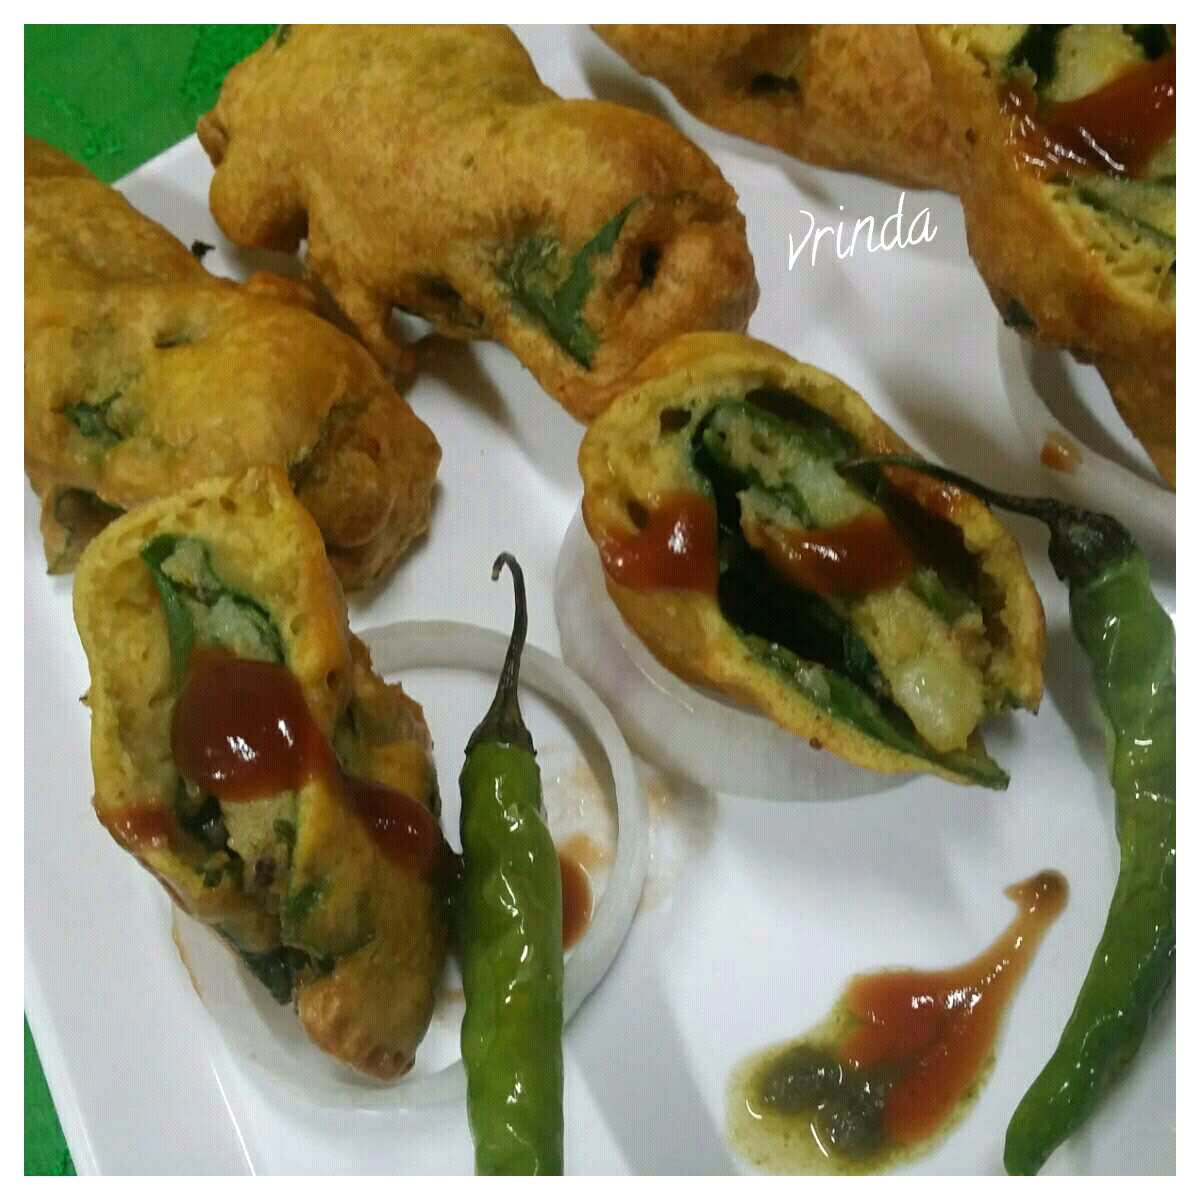 STUFFED SPINACH ROLL MIRCHI VADA